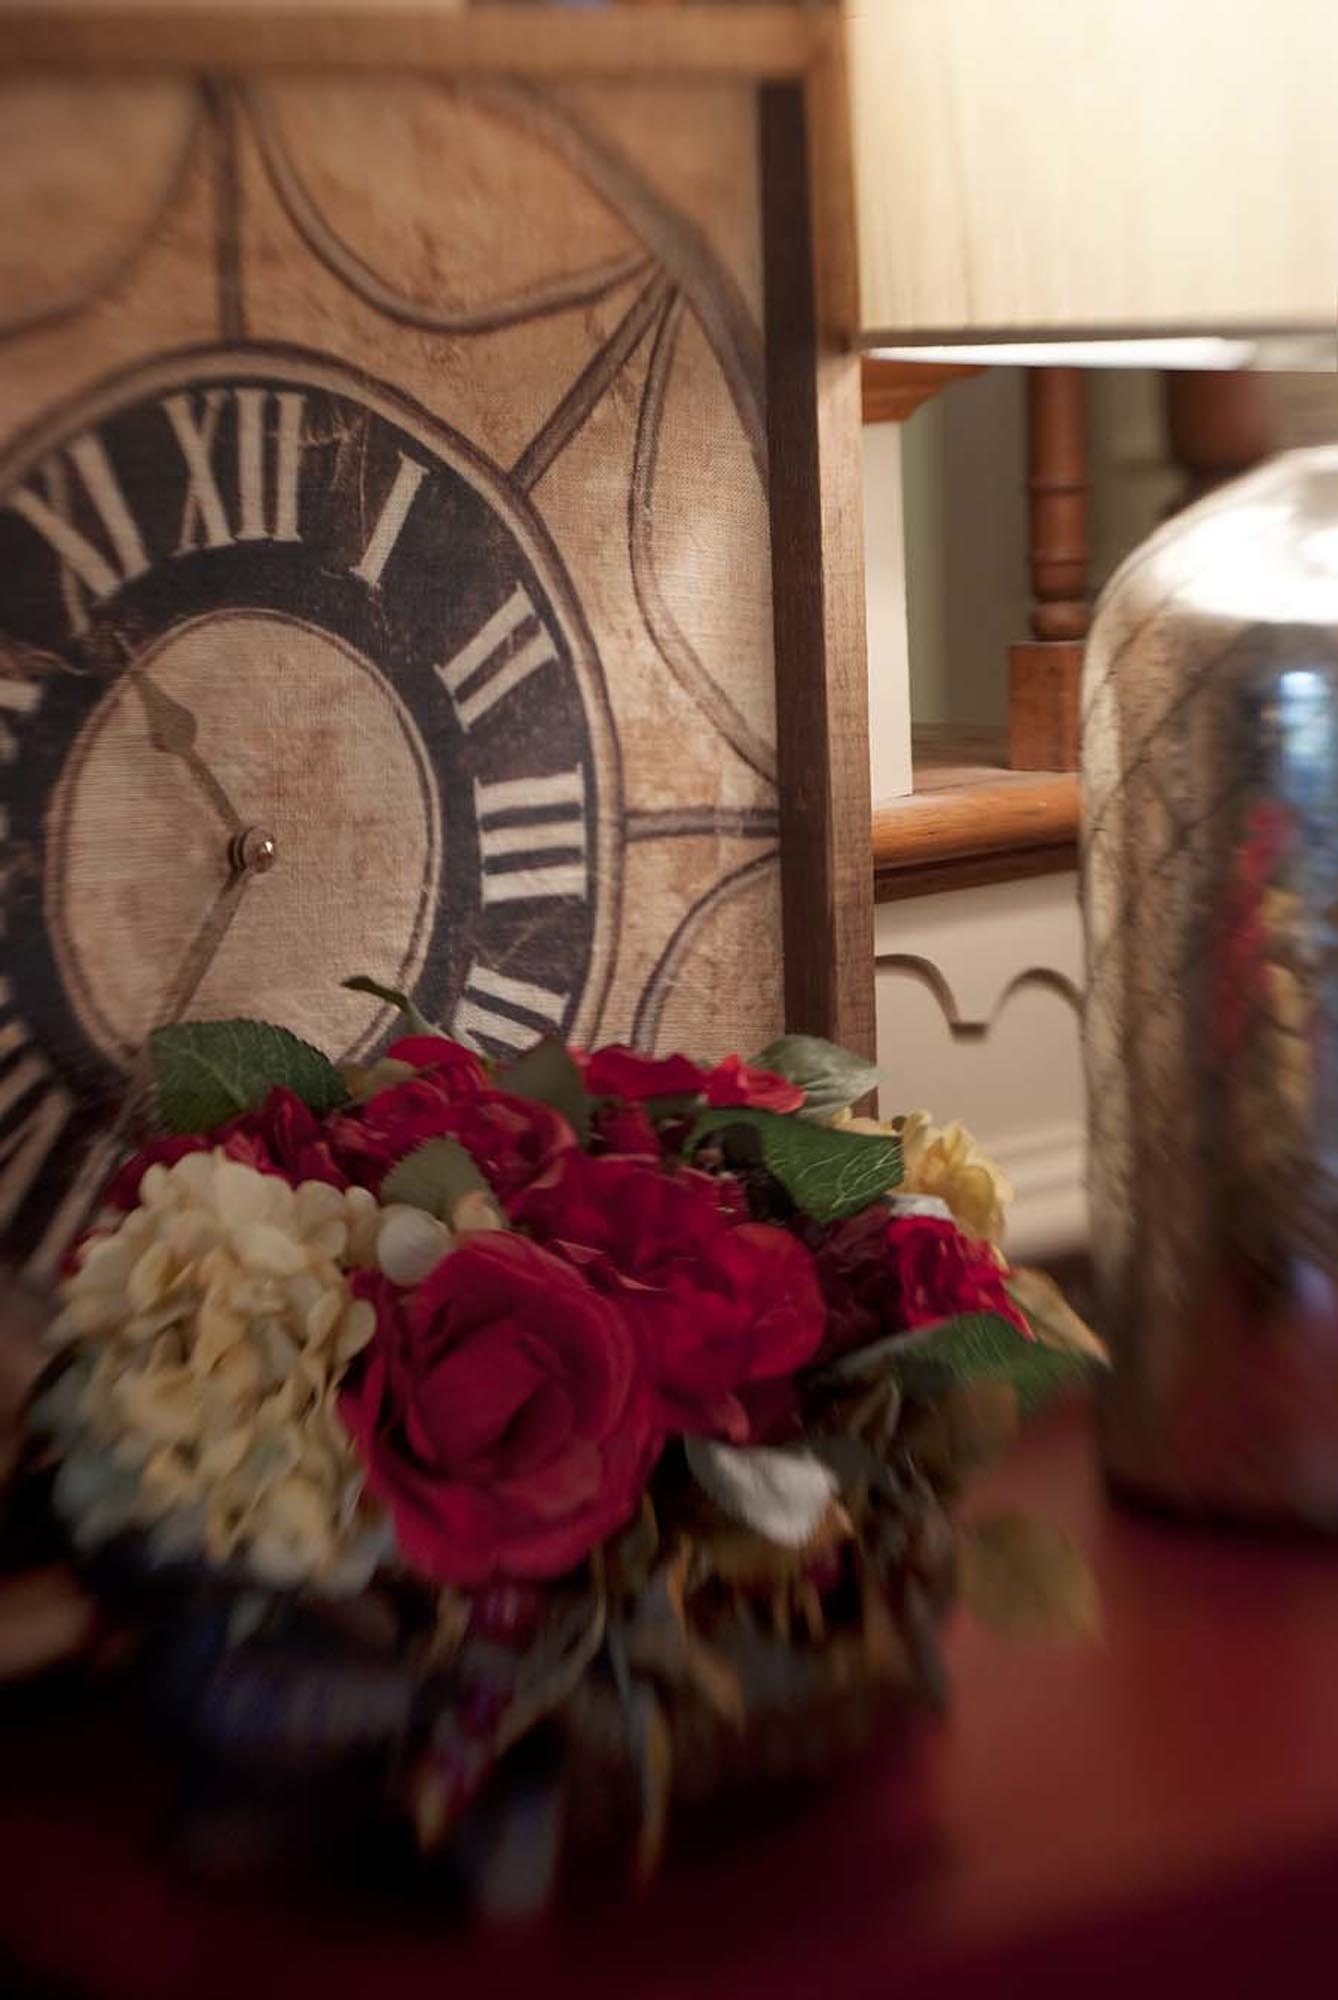 Small bouquet of flowers with retro style clock